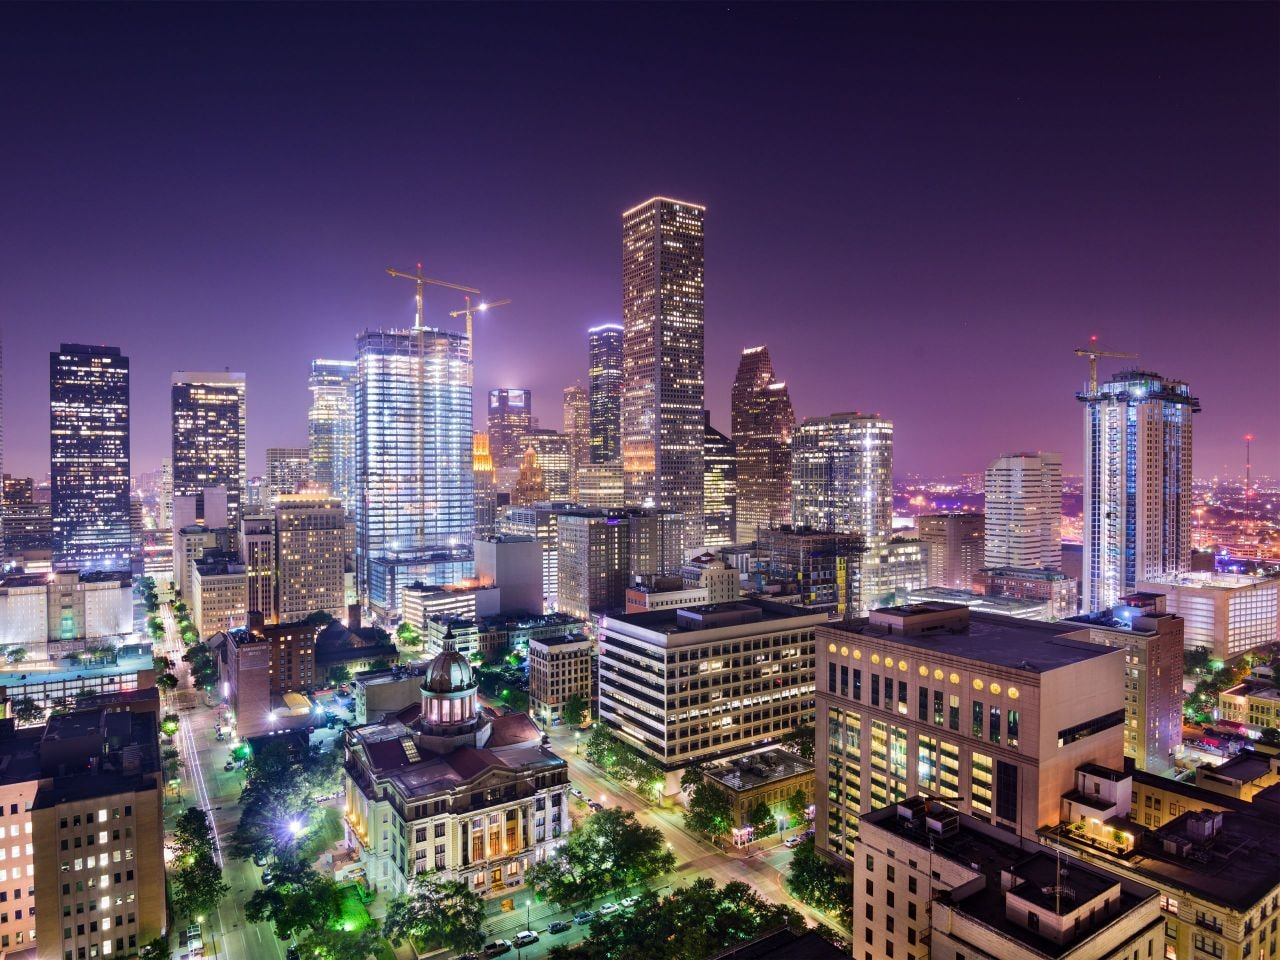 Huston at night